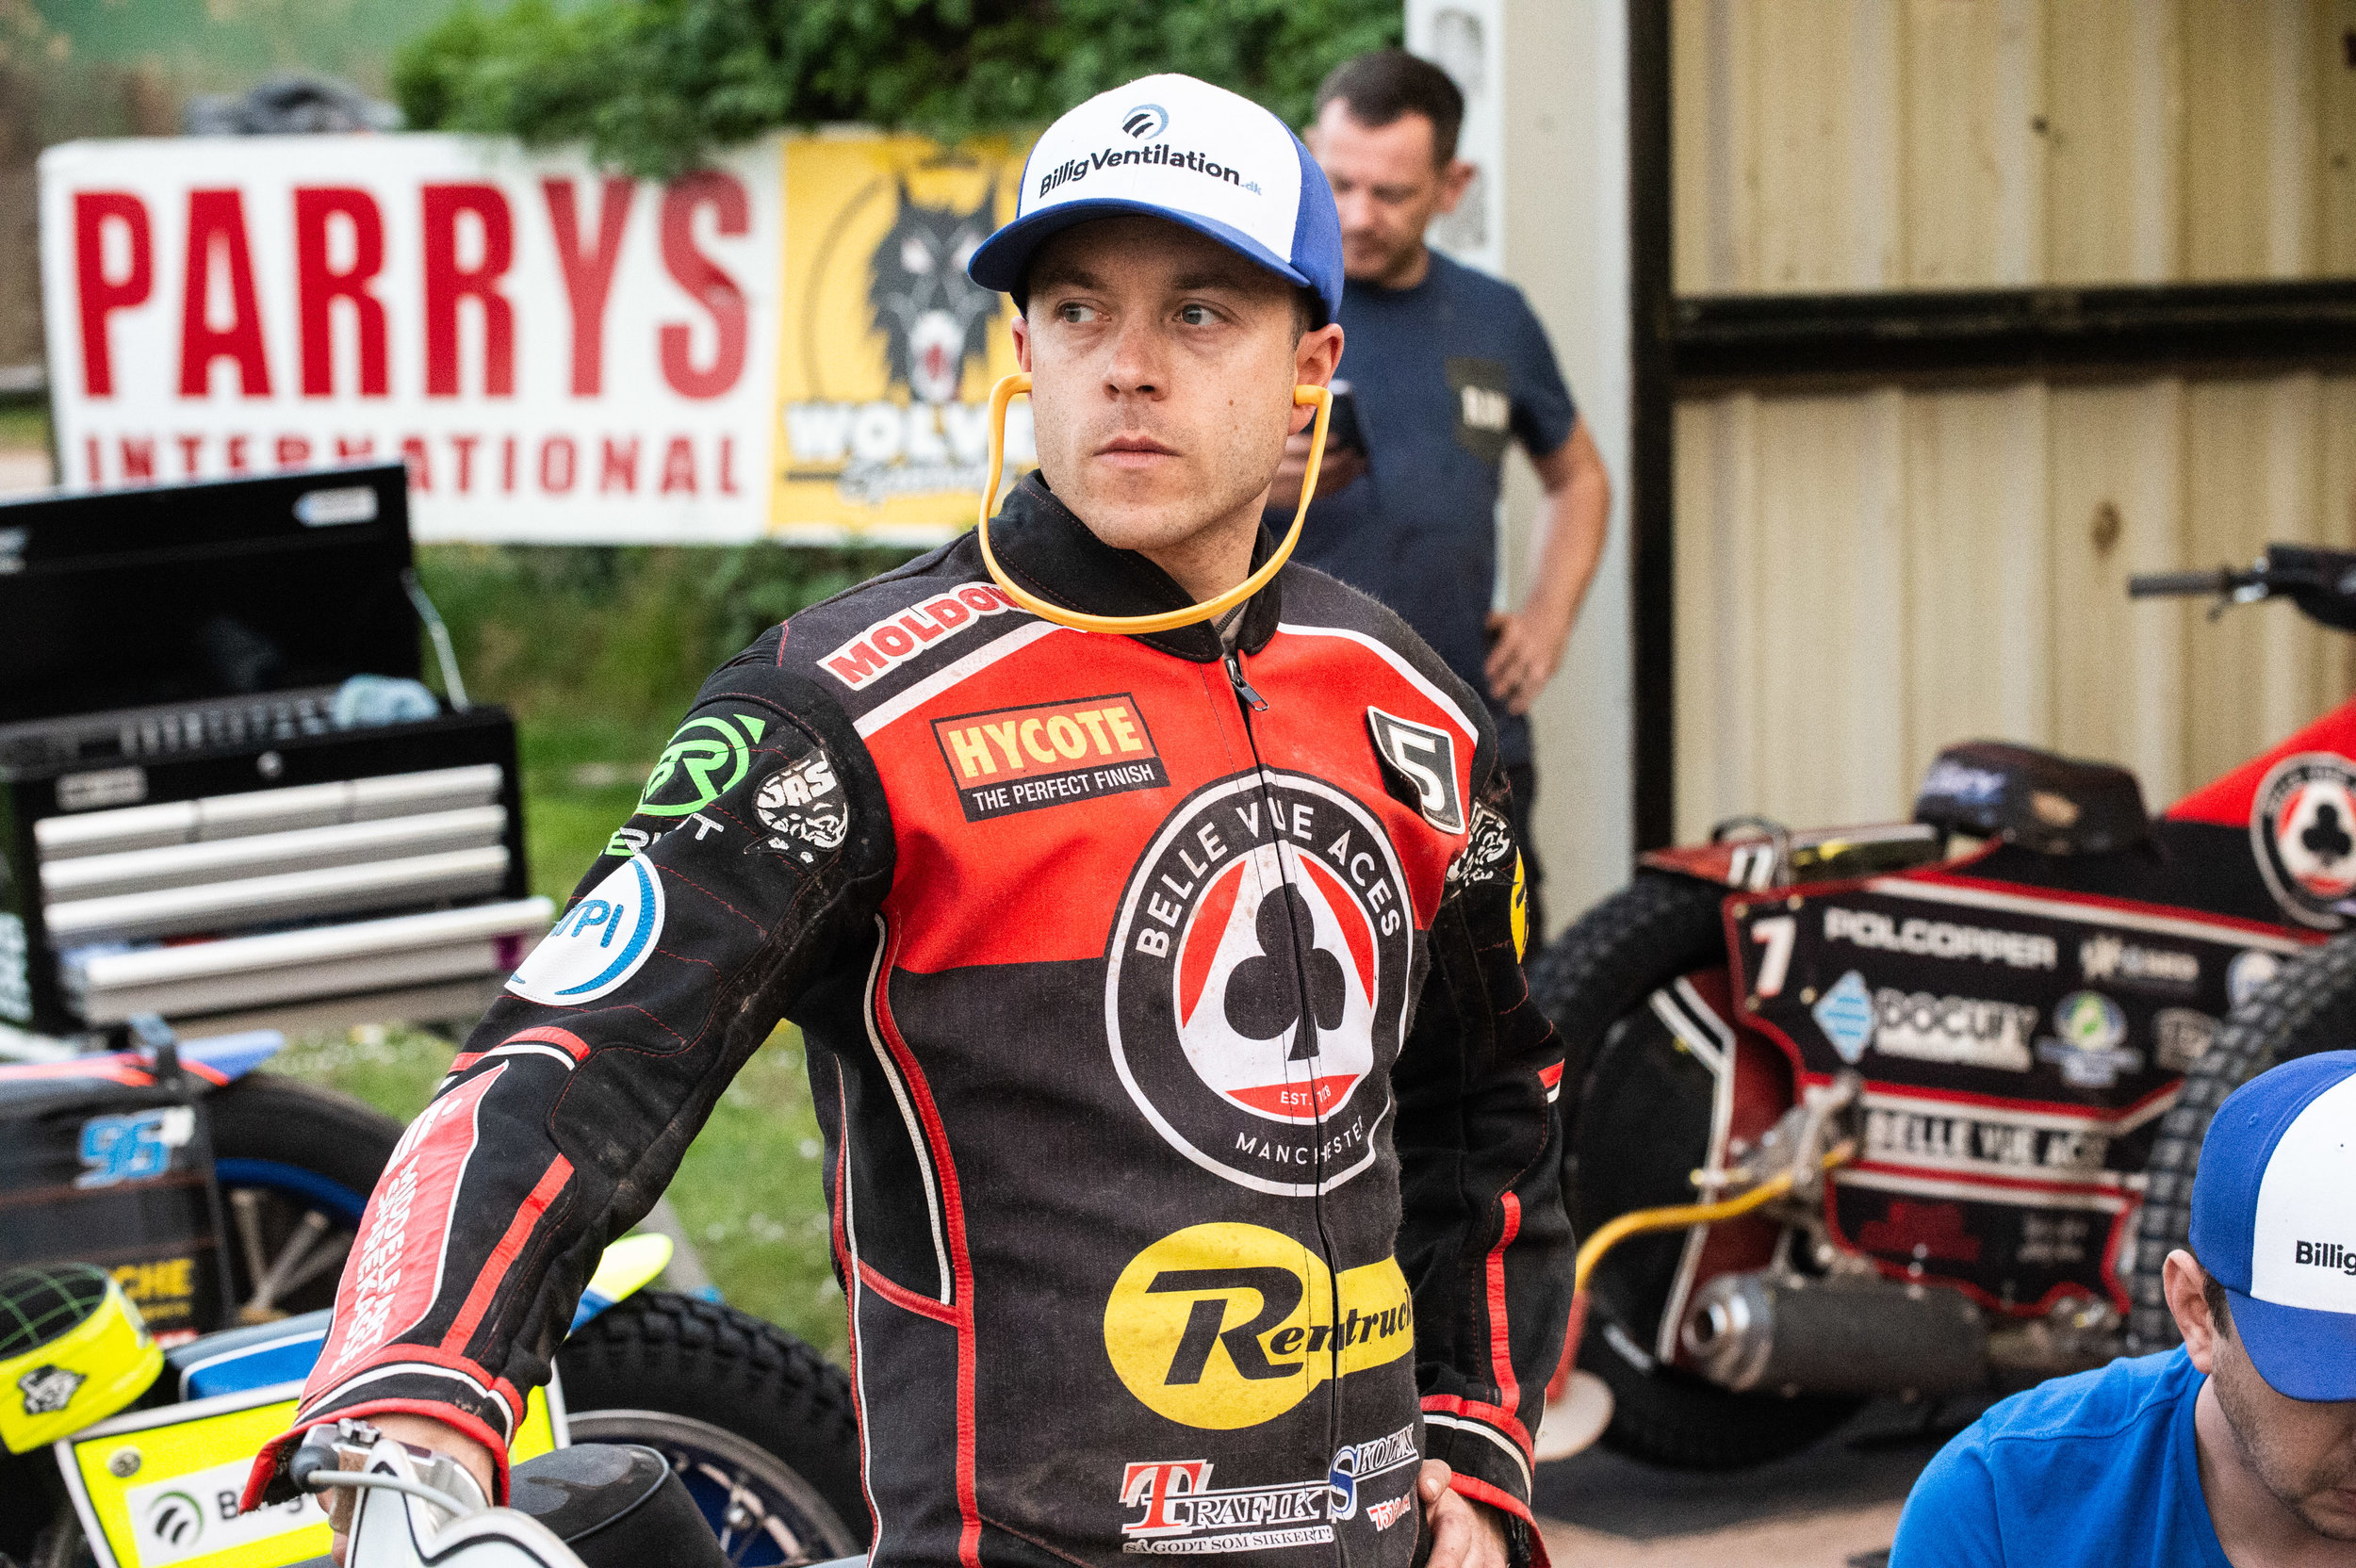 Kenneth Bjerre defied a 6-hour traffic jame to top score for the Rentruck Aces with 12 points.